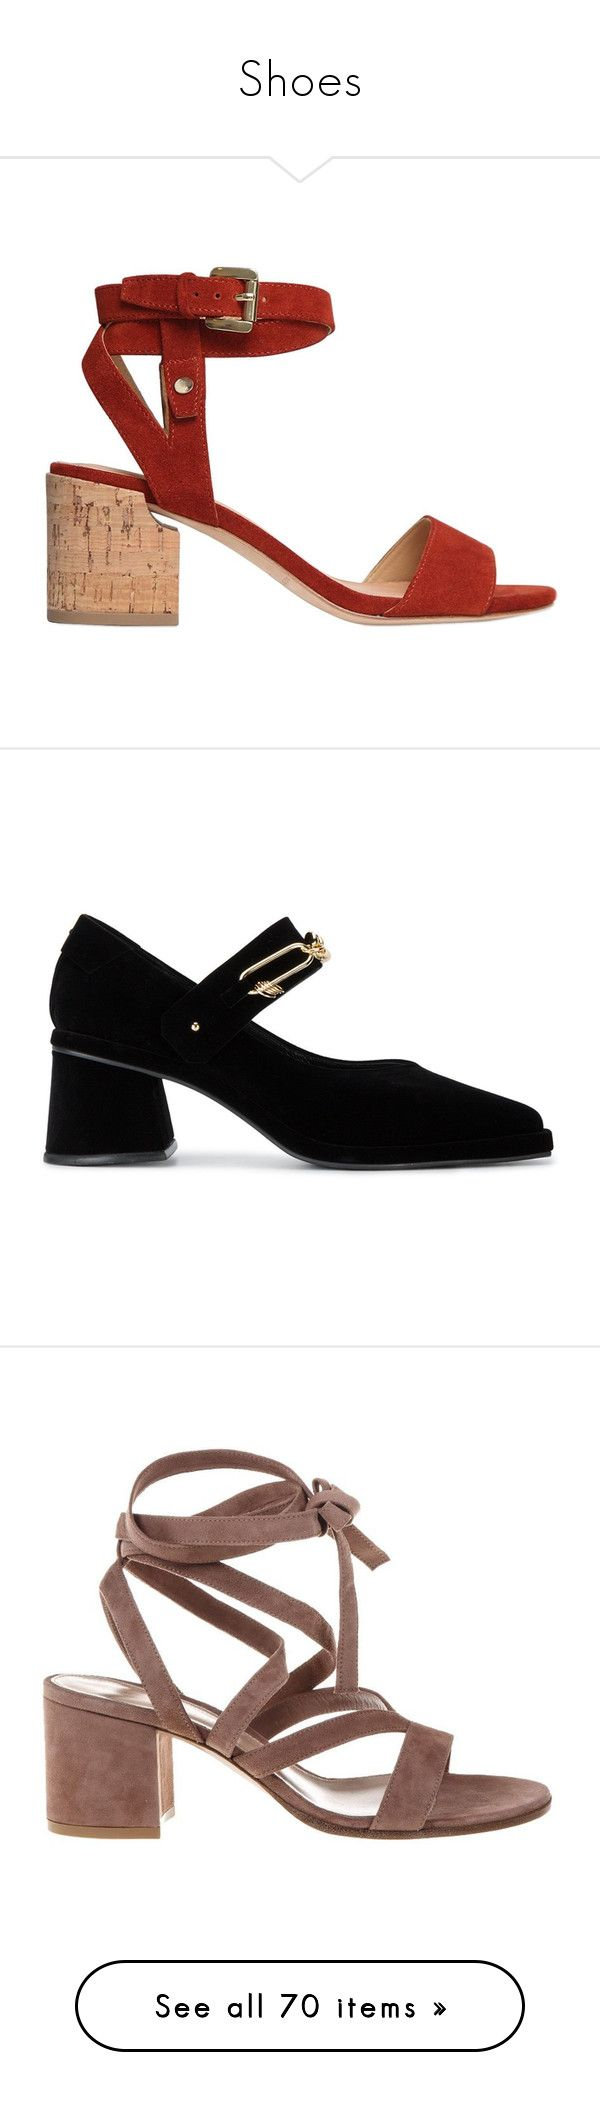 """Shoes"" by tinakriss ❤ liked on Polyvore featuring shoes, sandals, rust, mid-heel sandals, suede sandals, sigerson morrison shoes, sigerson morrison, sigerson morrison sandals, pumps and black"